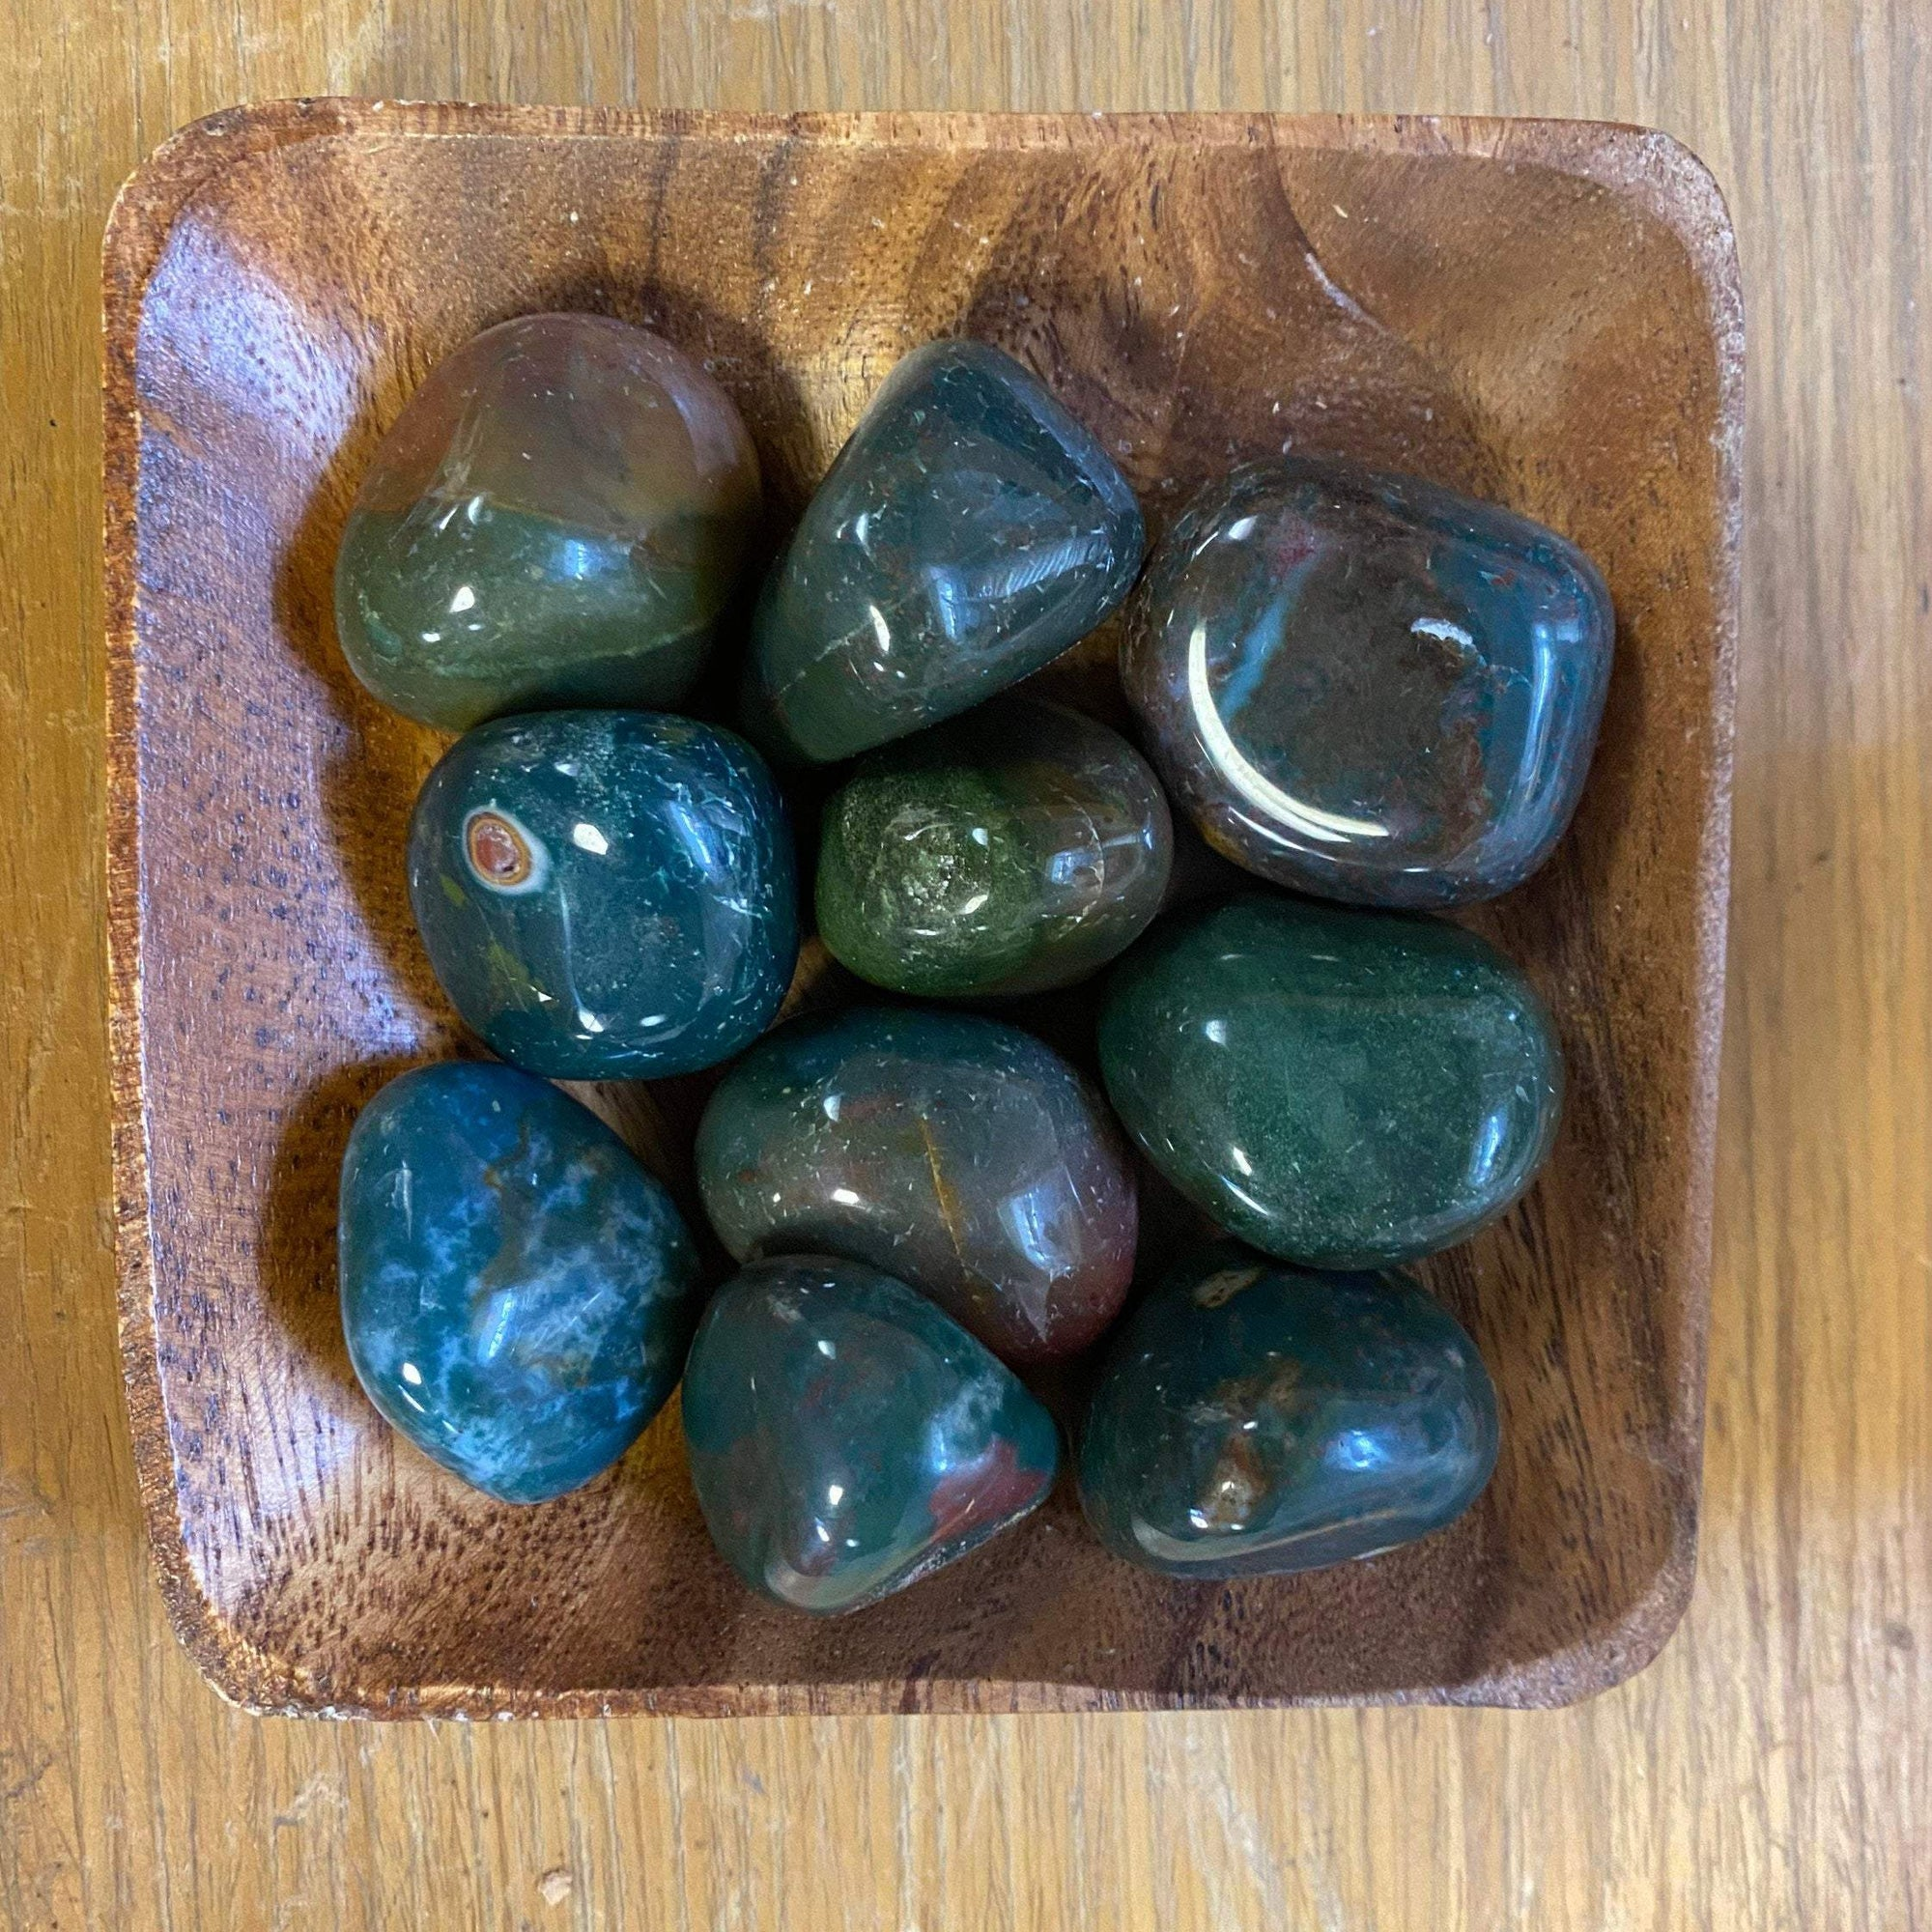 ONE LARGE Tumbled Bloodstone India